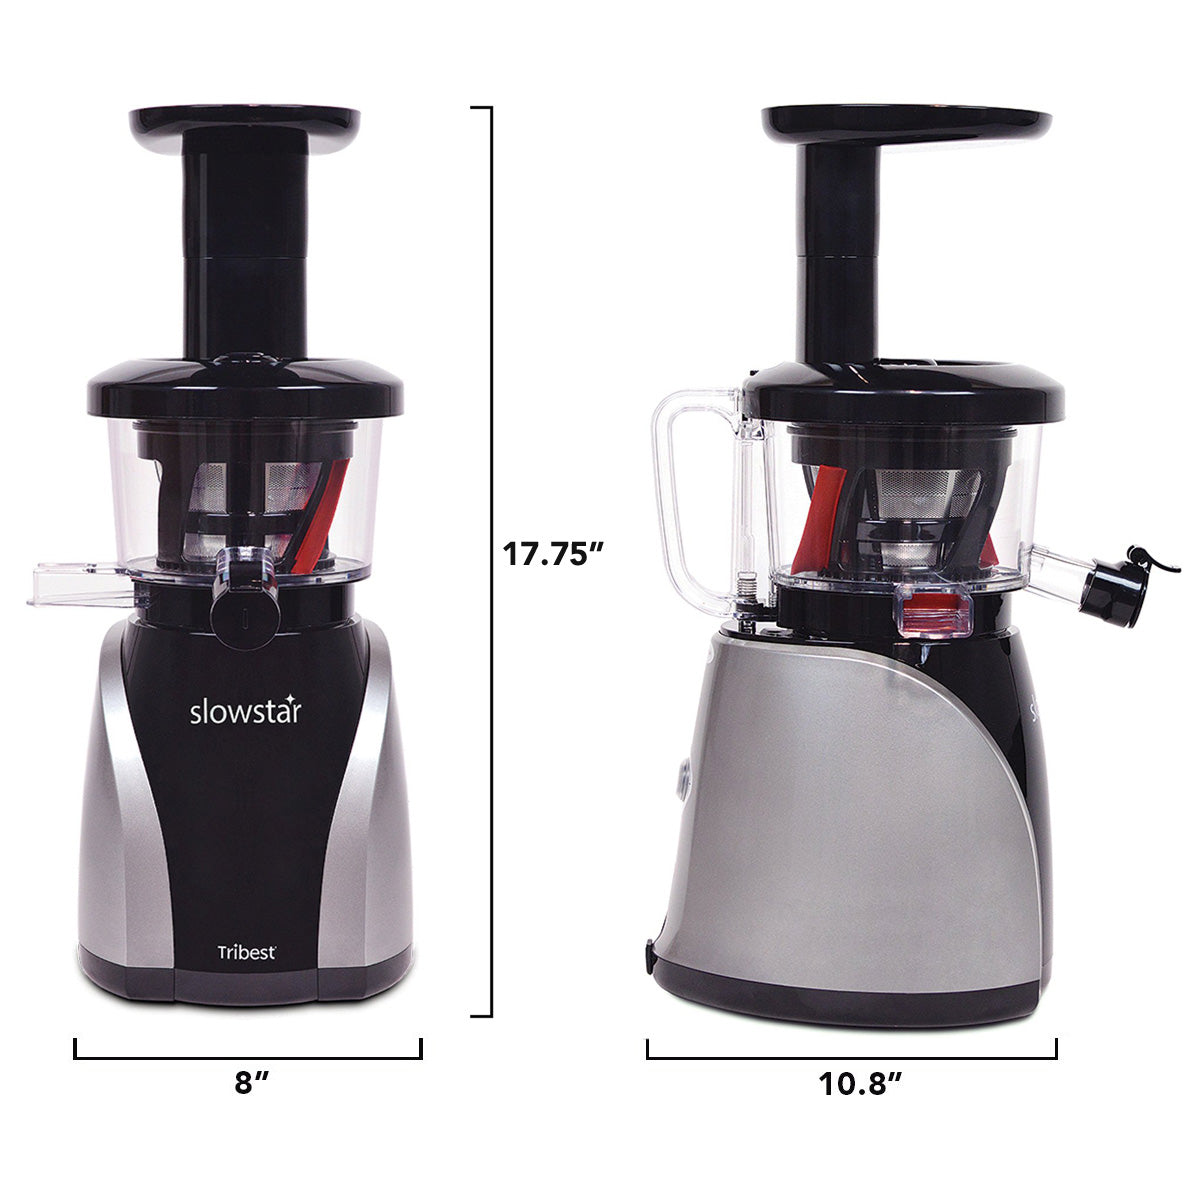 "Slowstar Vertical Slow Juicer & Mincer in Silver SW-2020-B - Size 8"" W x 10.8"" D x 17.75"" H - Tribest"